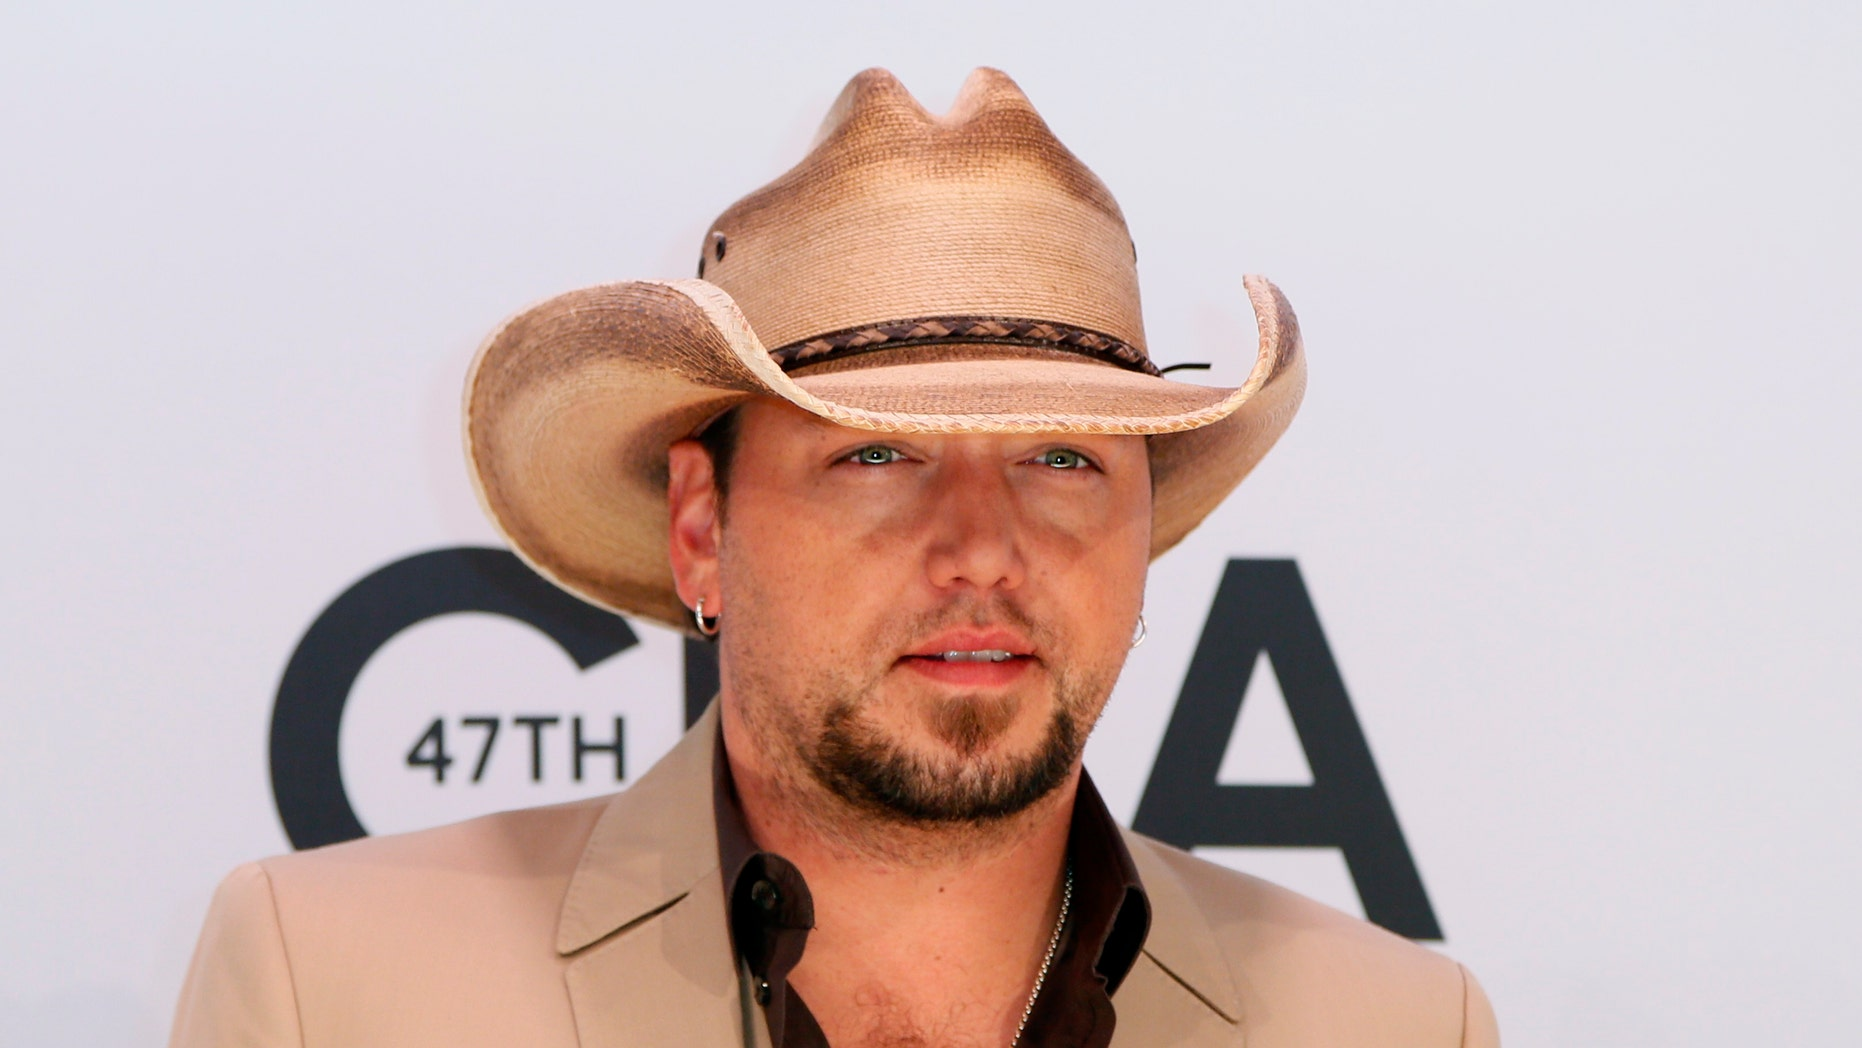 Singer Jason Aldean arrives at the 47th Country Music Association Awards in Nashville, Tennessee November 6, 2013.     REUTERS/Eric Henderson (UNITED STATES  - Tags: ENTERTAINMENT)   - RTX1533O